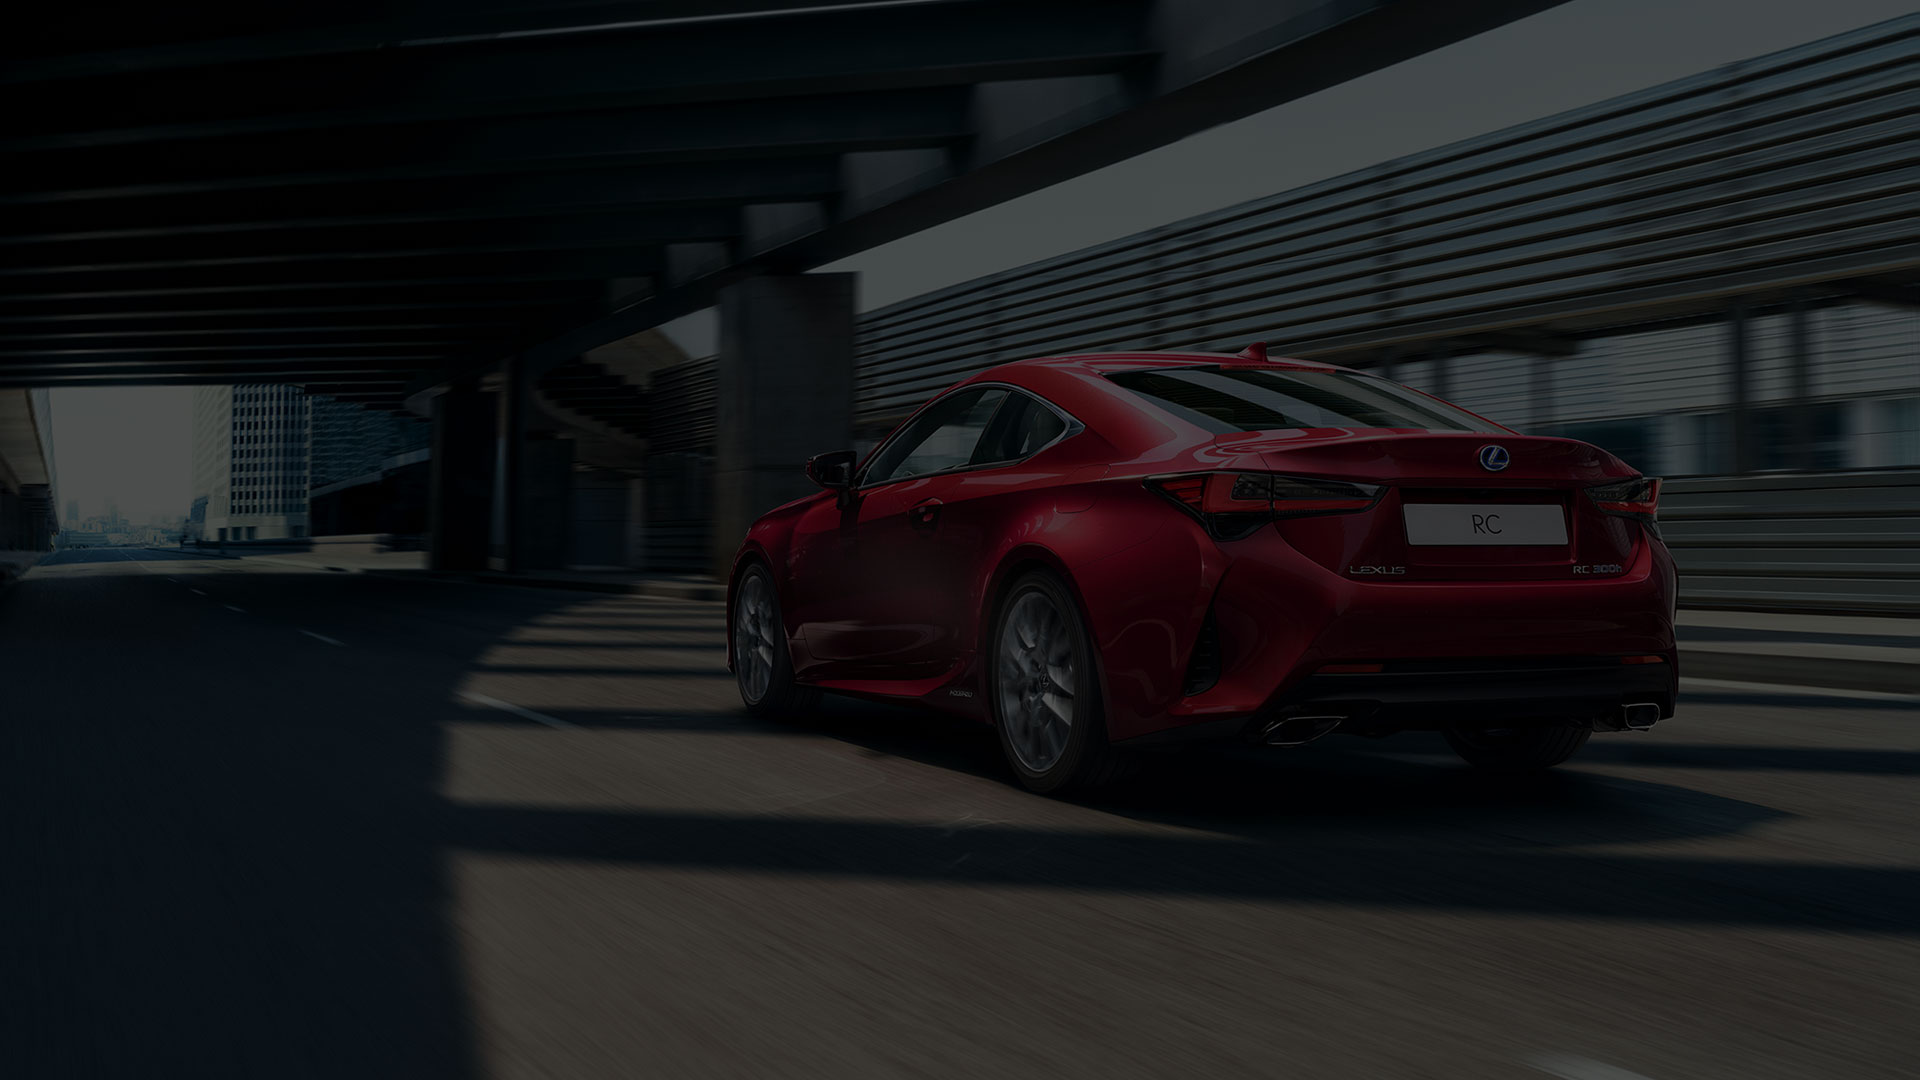 2018 lexus new rc driving emotion quote background